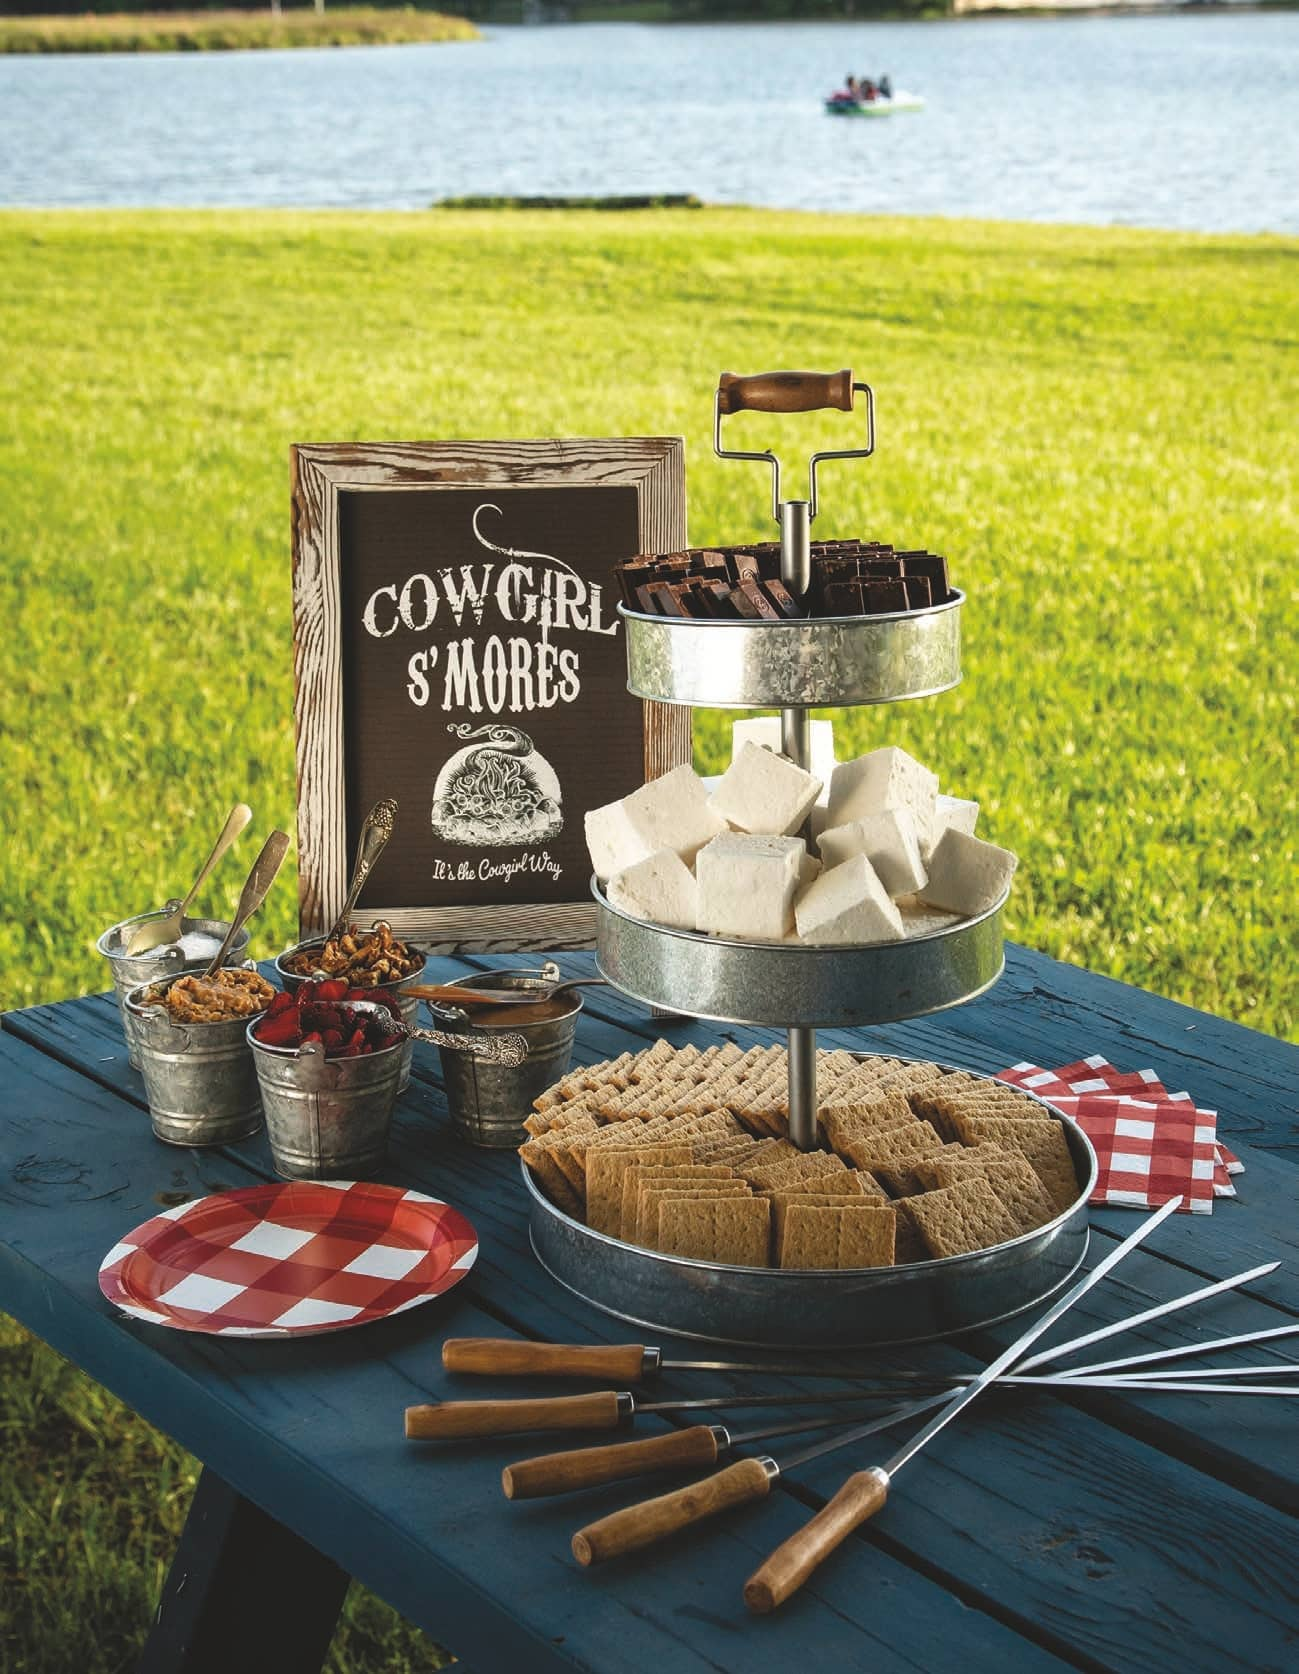 COWGIRL S'MORES